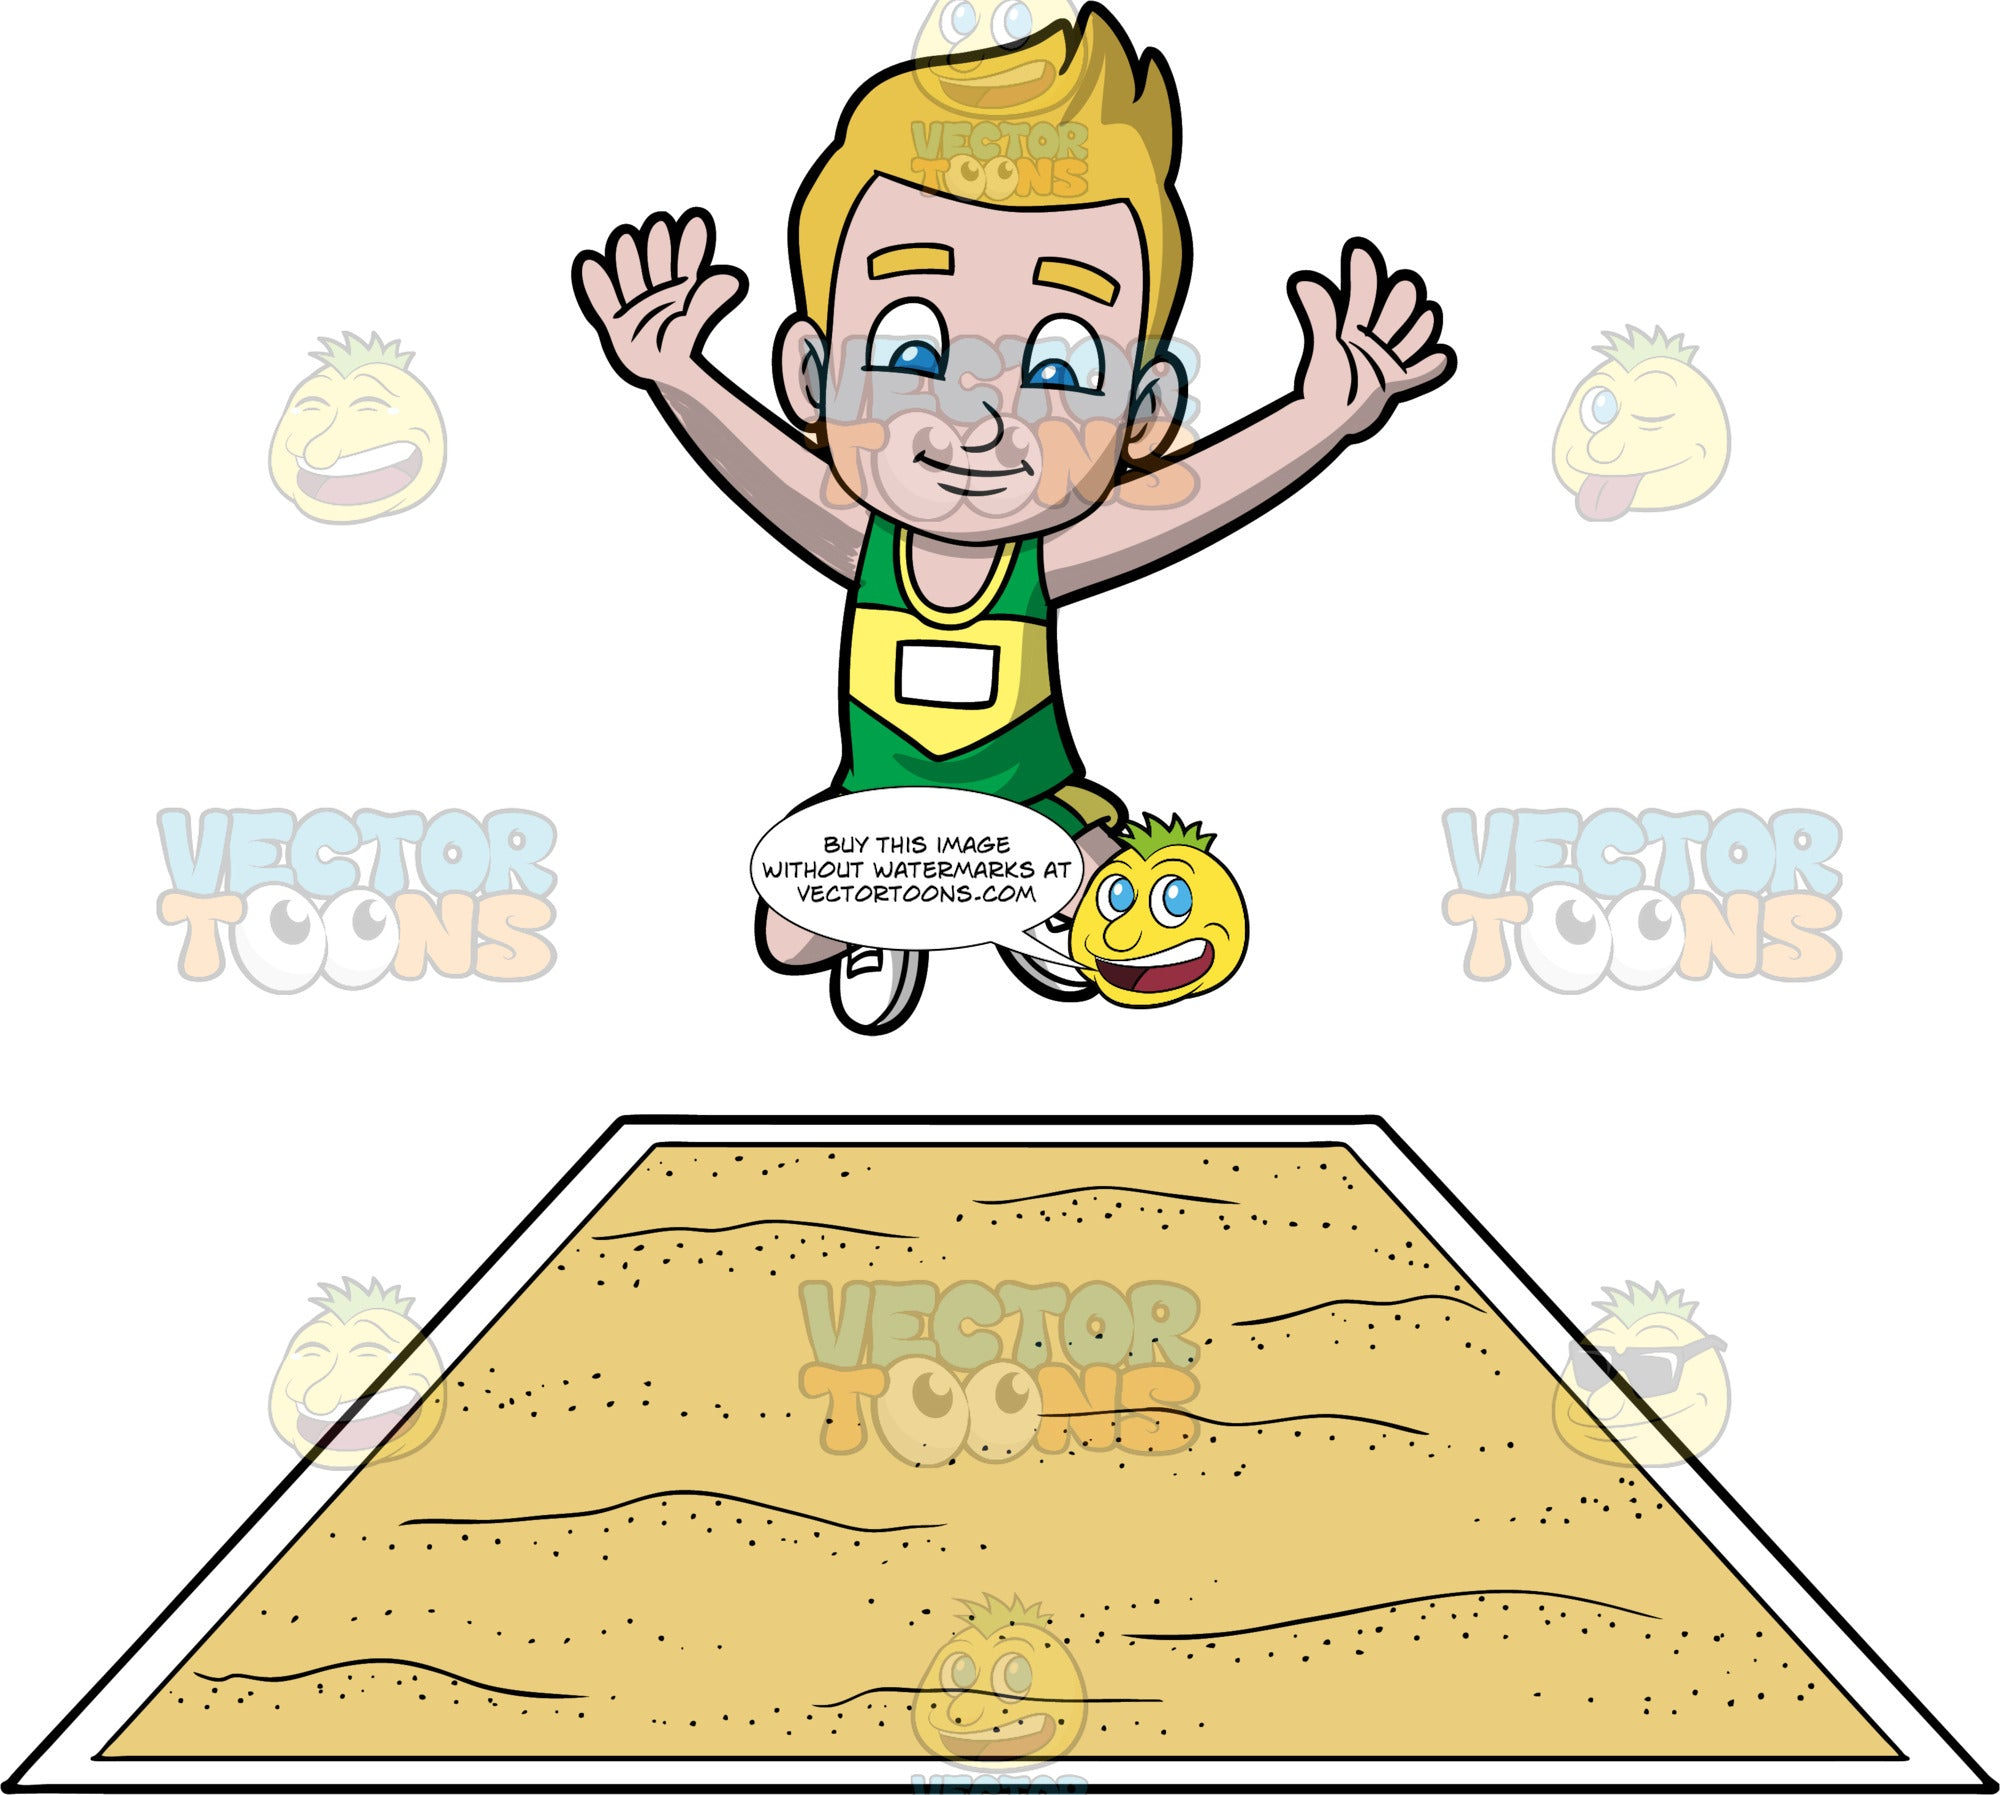 Young Matthew Jumping During A Long Jump Event. A young boy wearing green with yellow shorts, a green and yellow tank top, and white running shoes, jumps into the air and prepares to land in a long jump pit